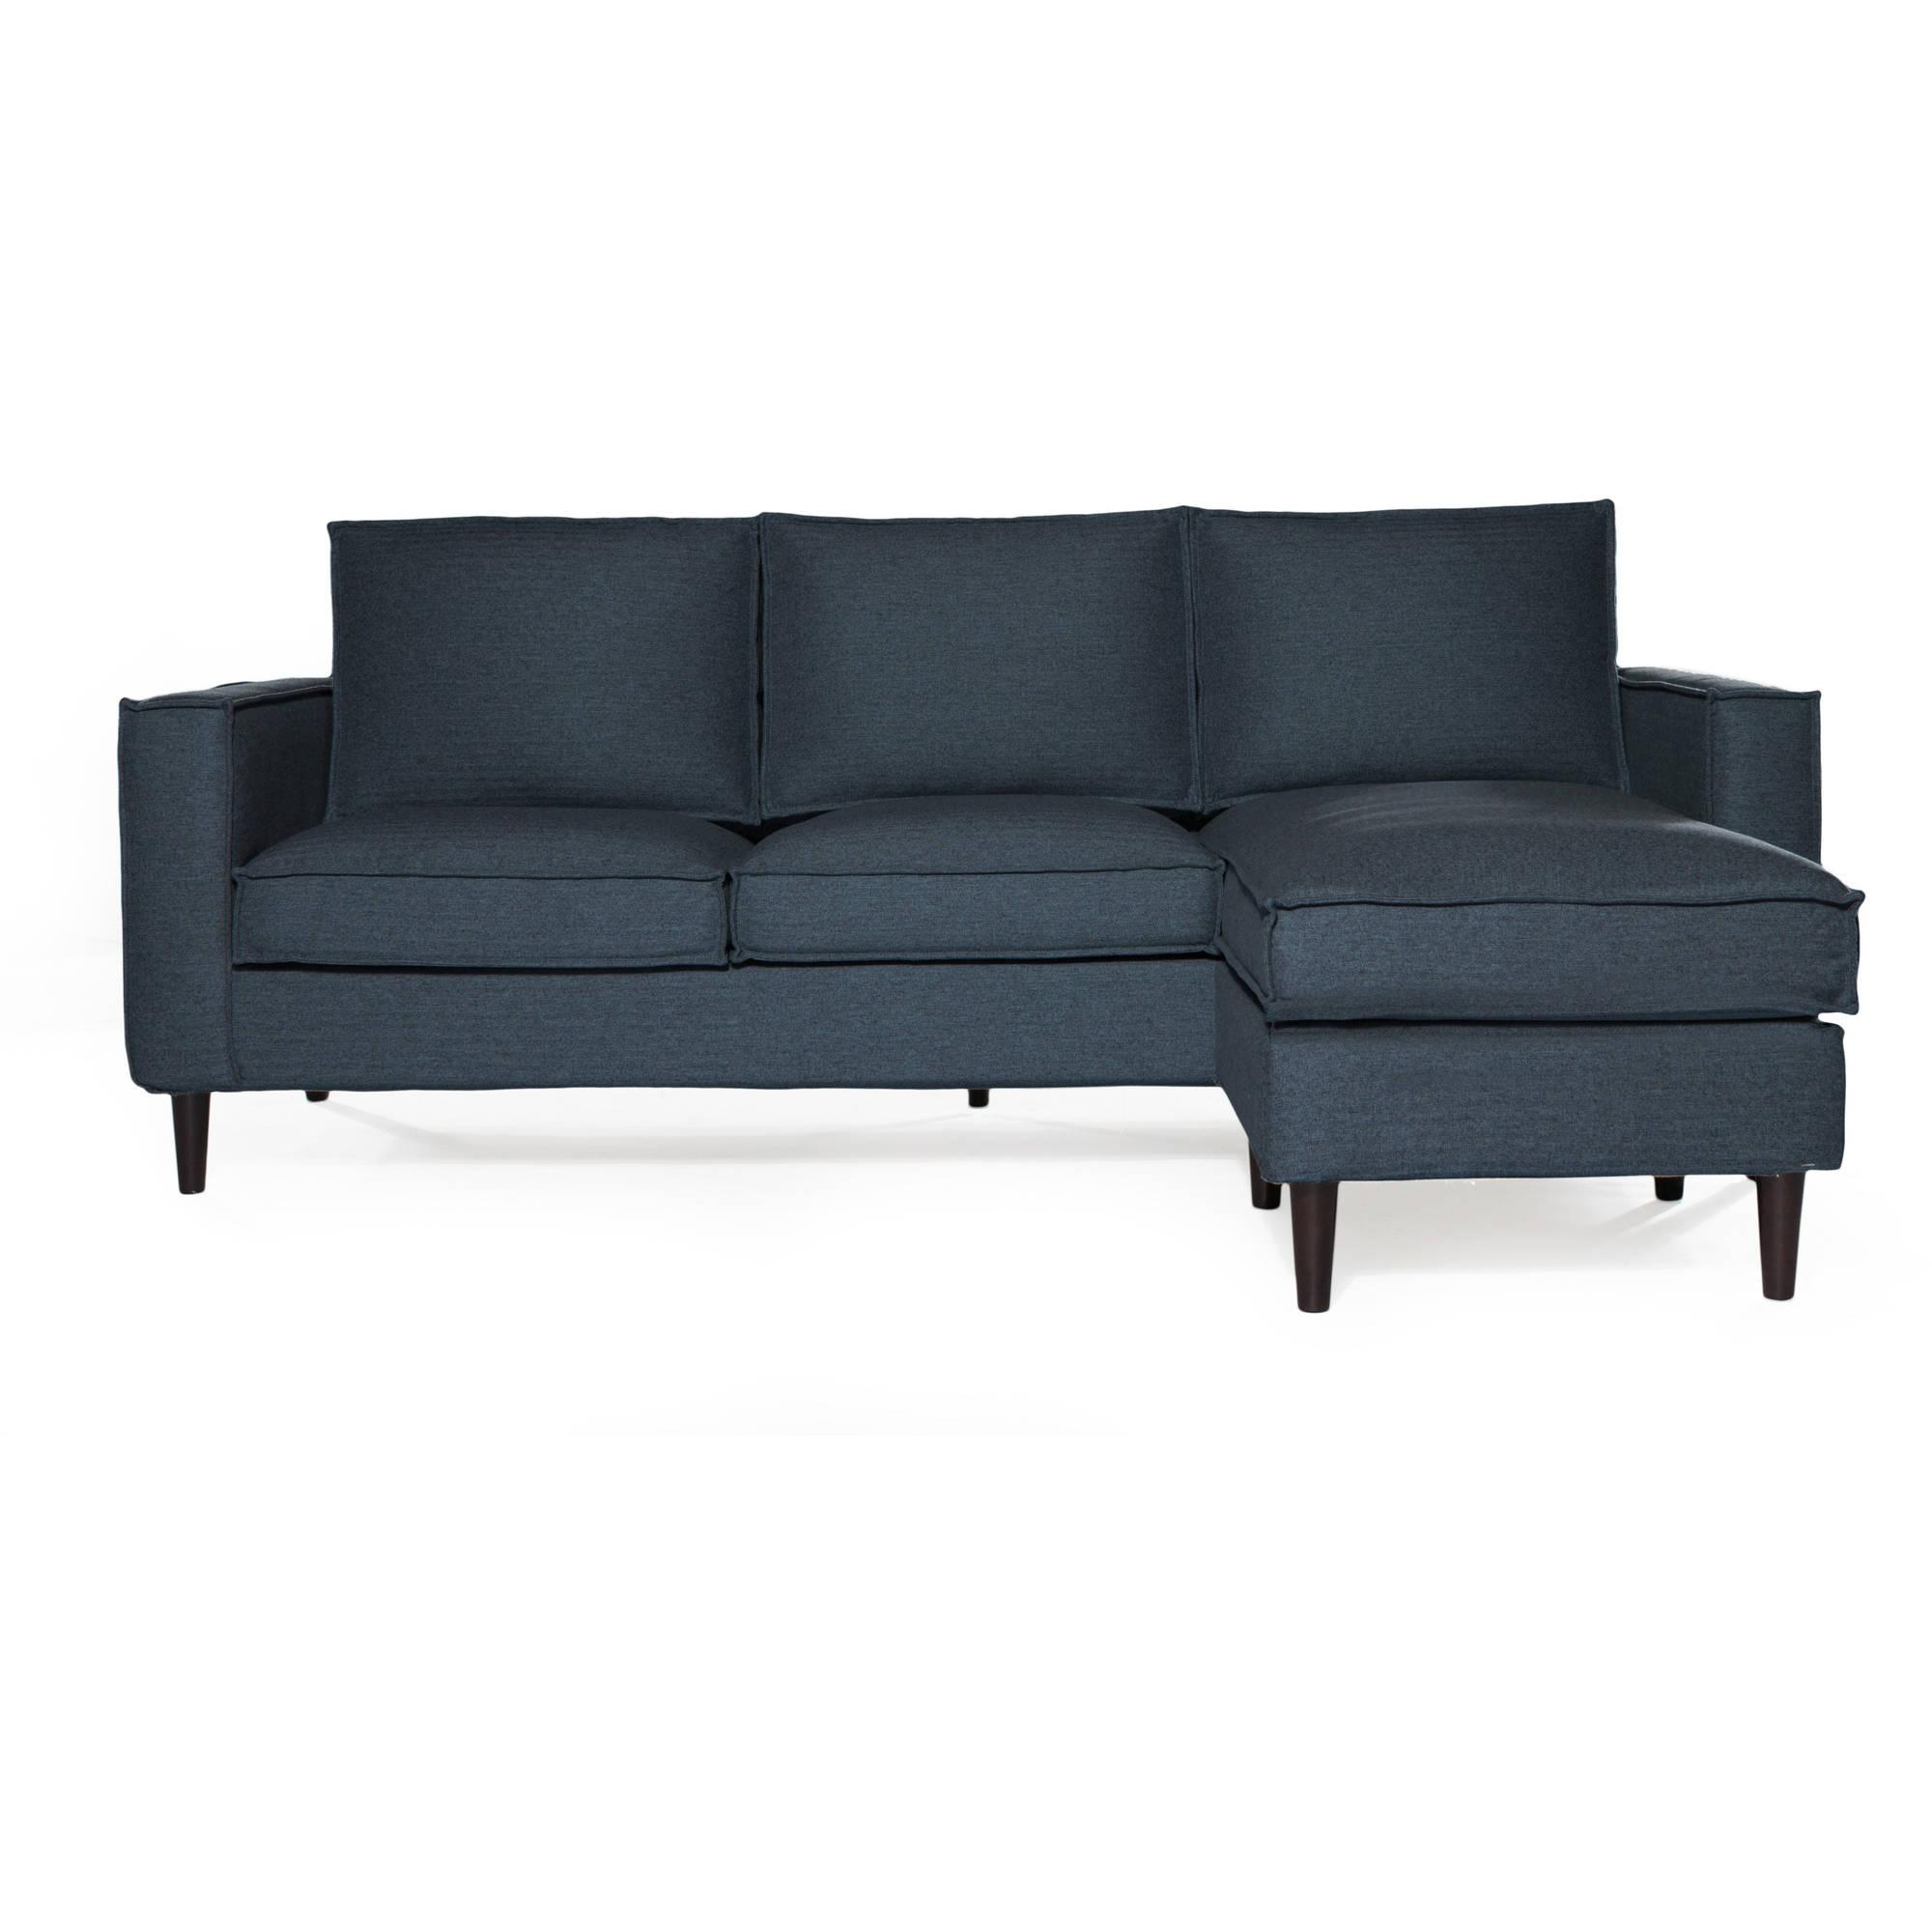 Sofas & Couches – Walmart For Gold Sectional Sofa (Image 12 of 15)